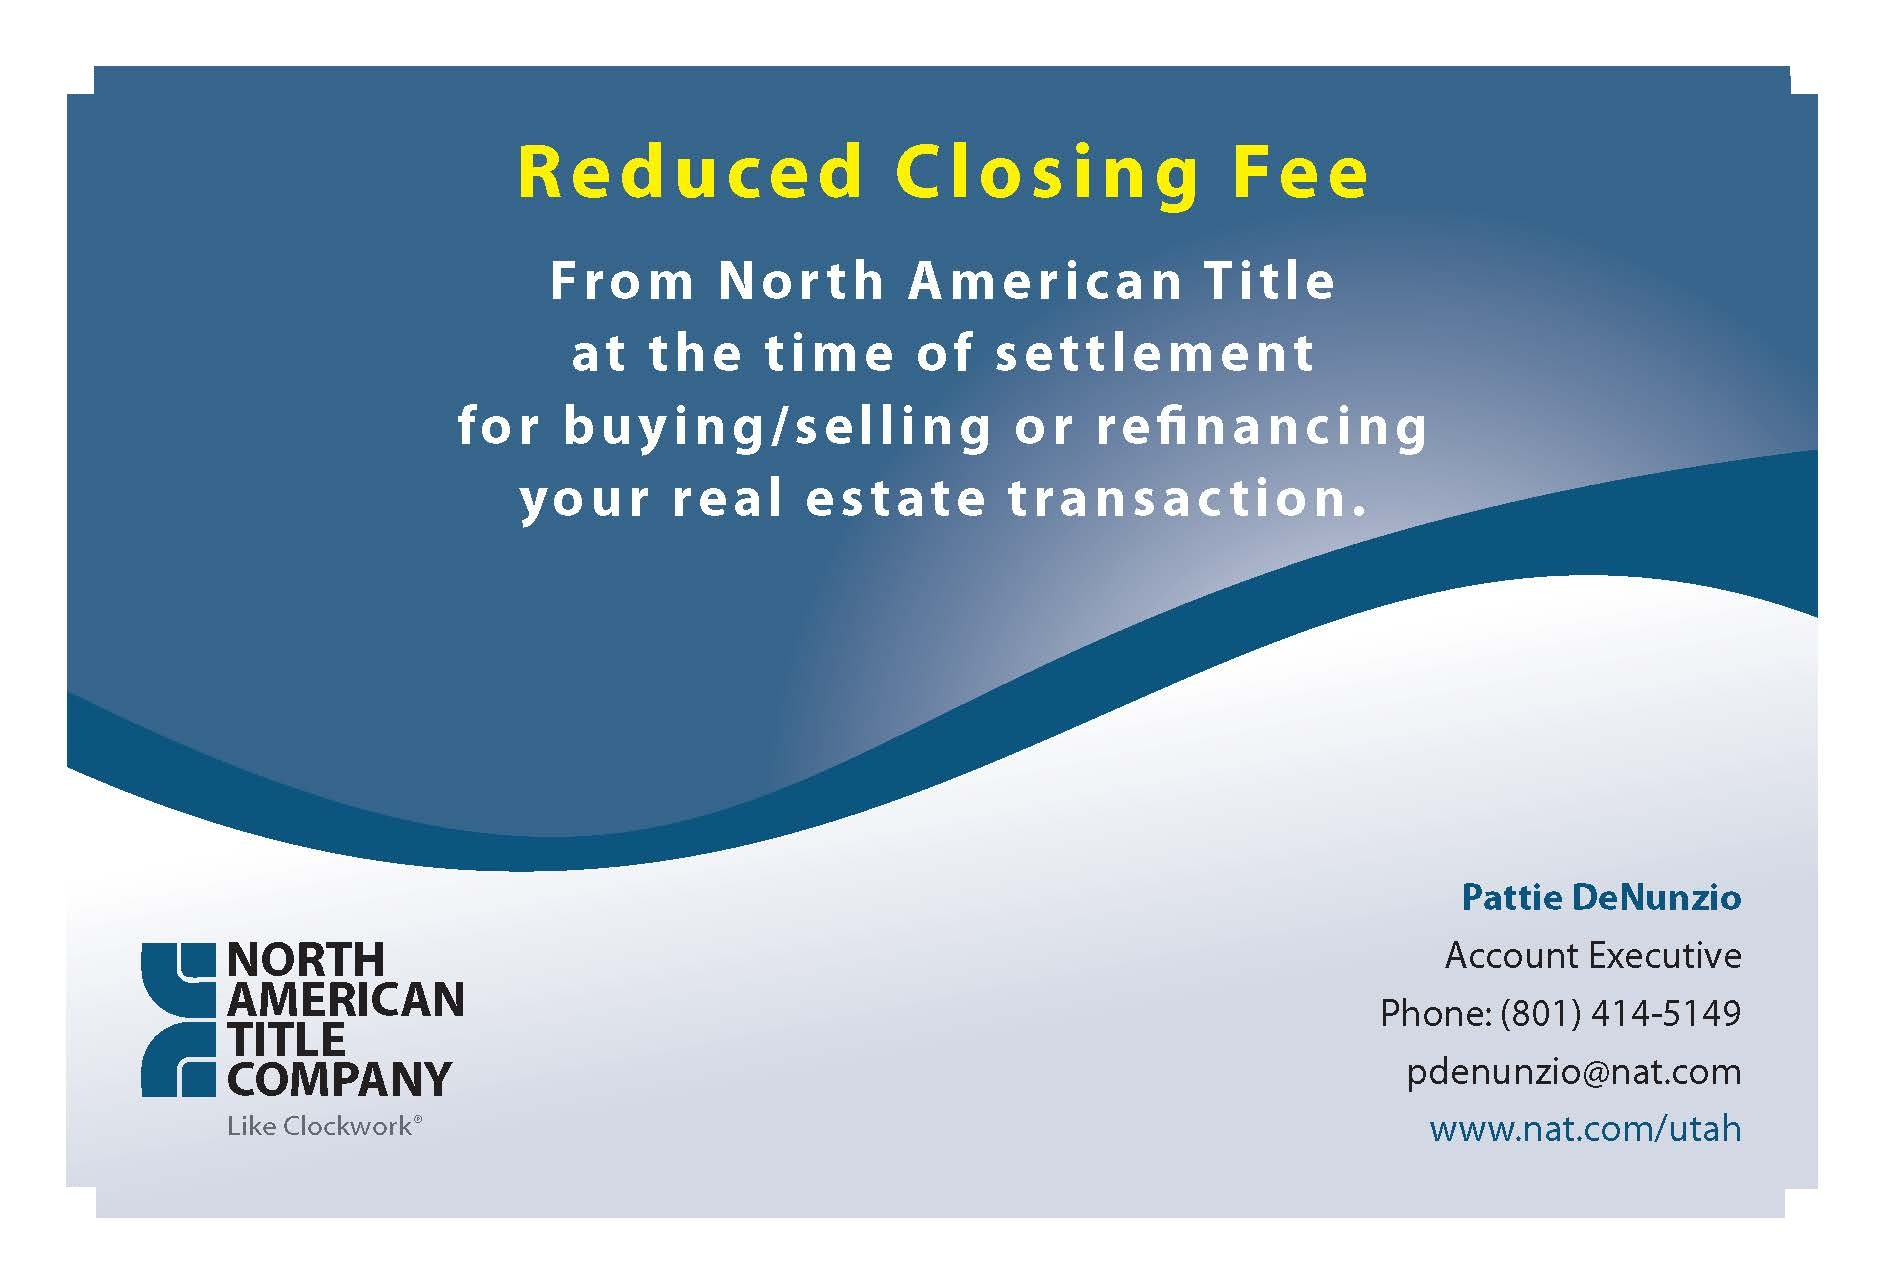 Corporate reduced fees flyer